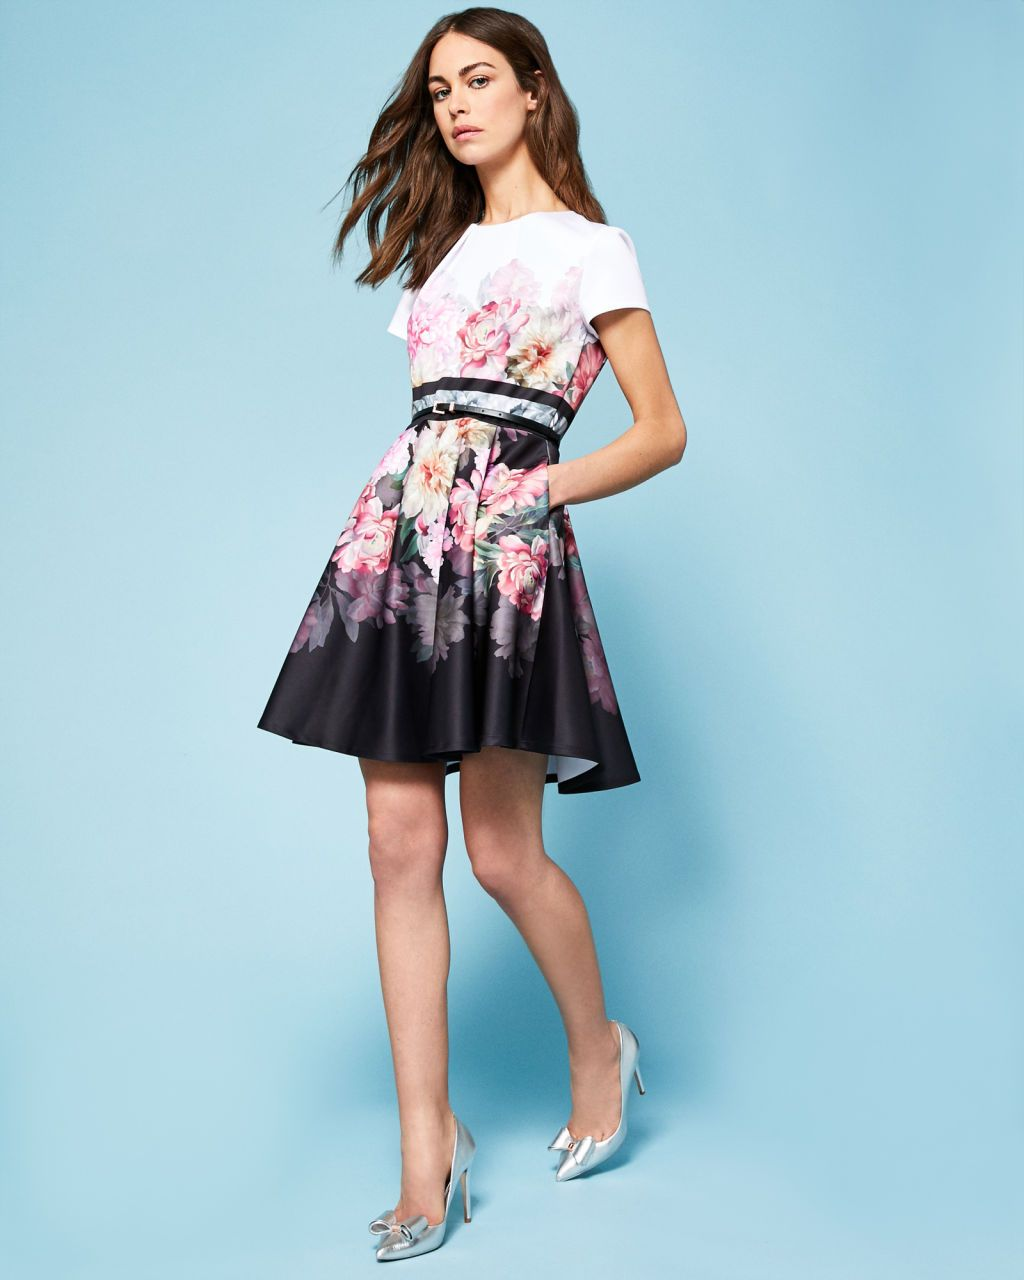 46c6af1284b1a Painted Posie skater dress - Baby Pink